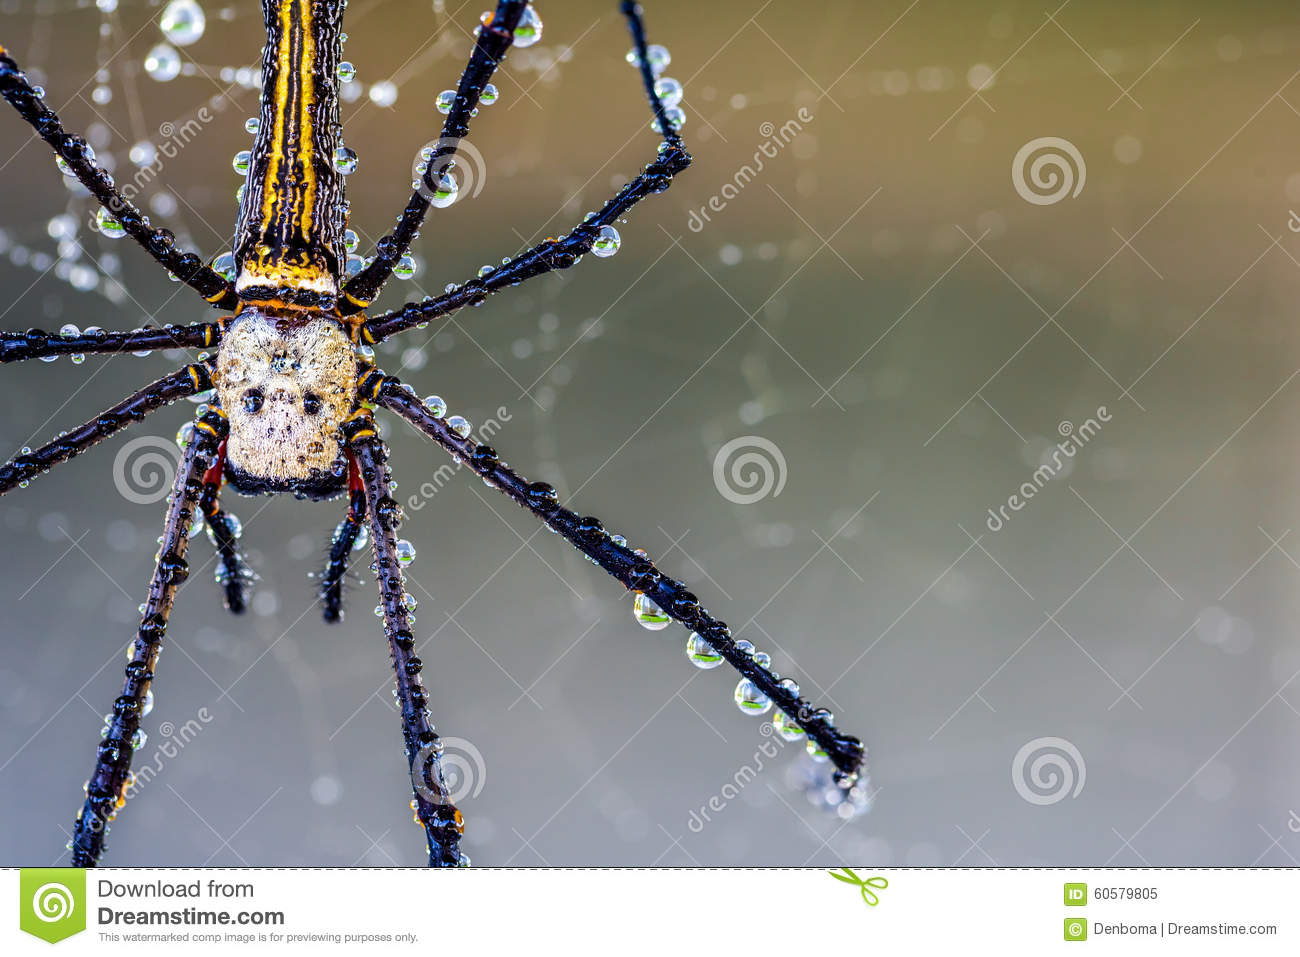 Golden Silk Orb-weaver Spider clipart #20, Download drawings